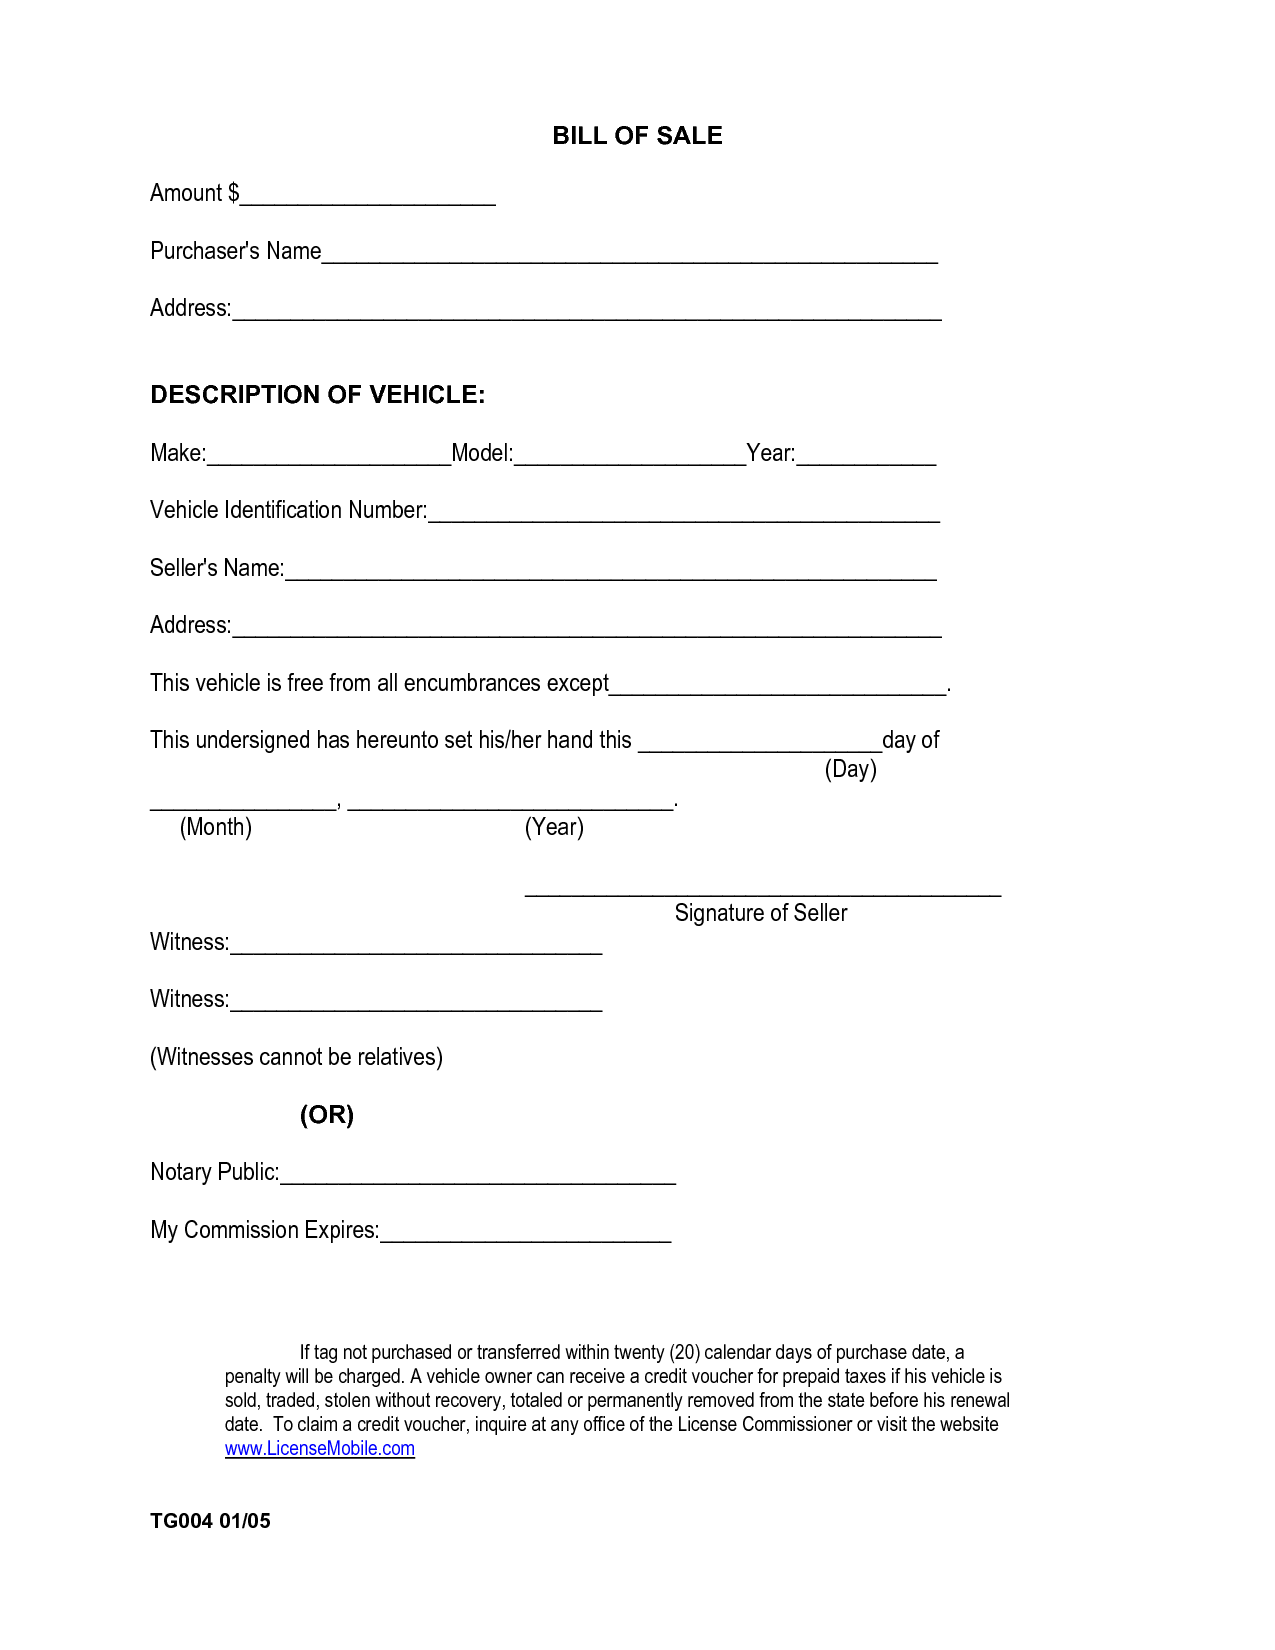 Used Car Bill Of Sale Template Pdf and Printable Sample Car Bill Of Sale form Laywers Template forms